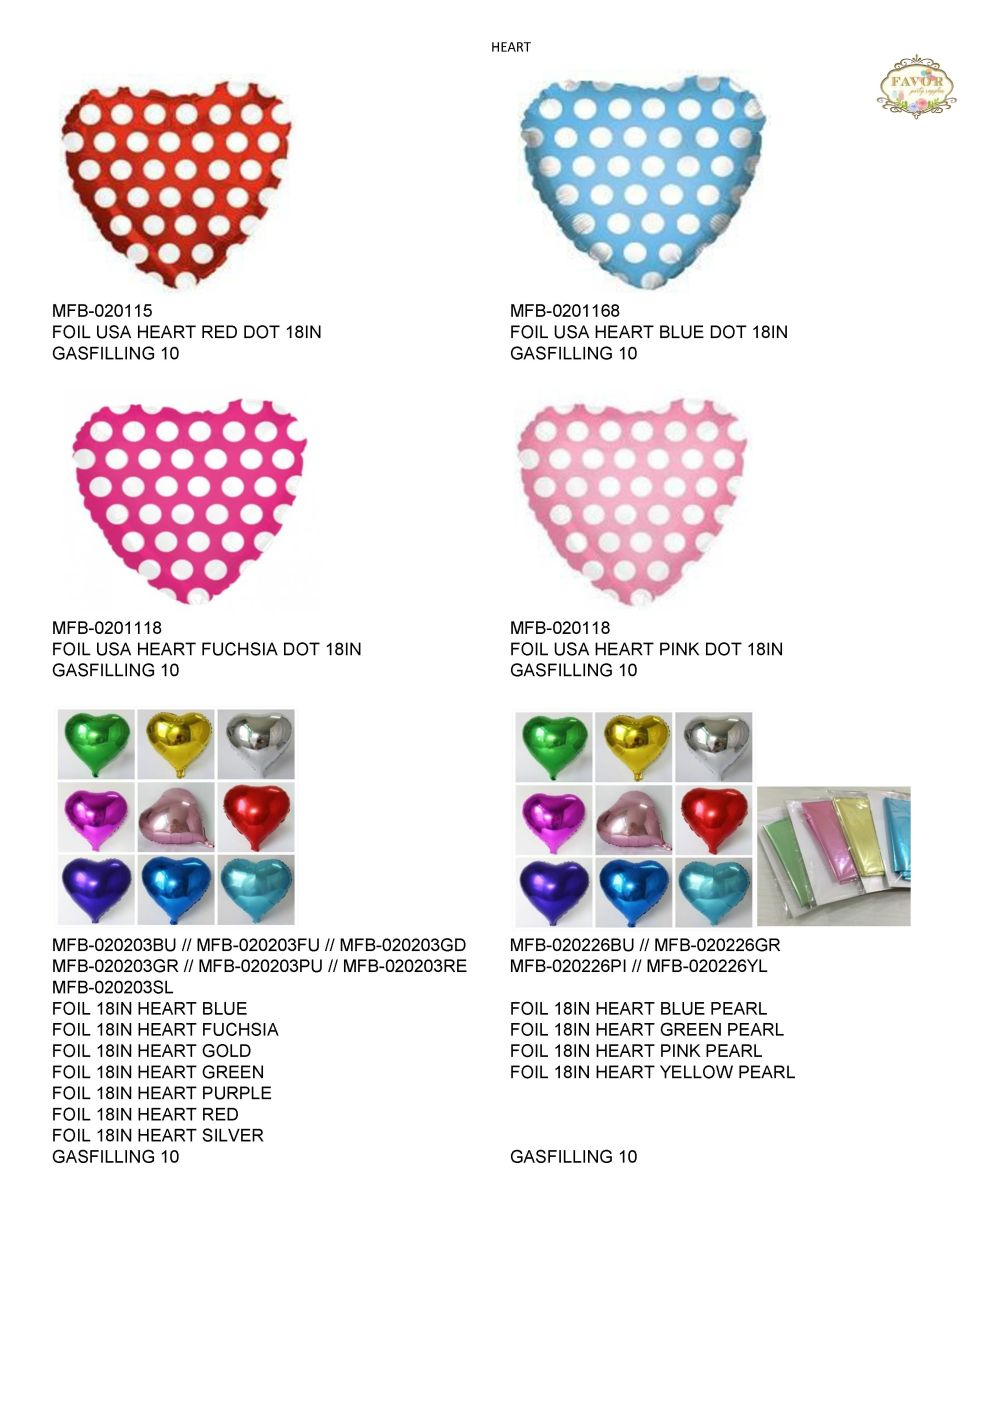 katalog-heart-shaped-2